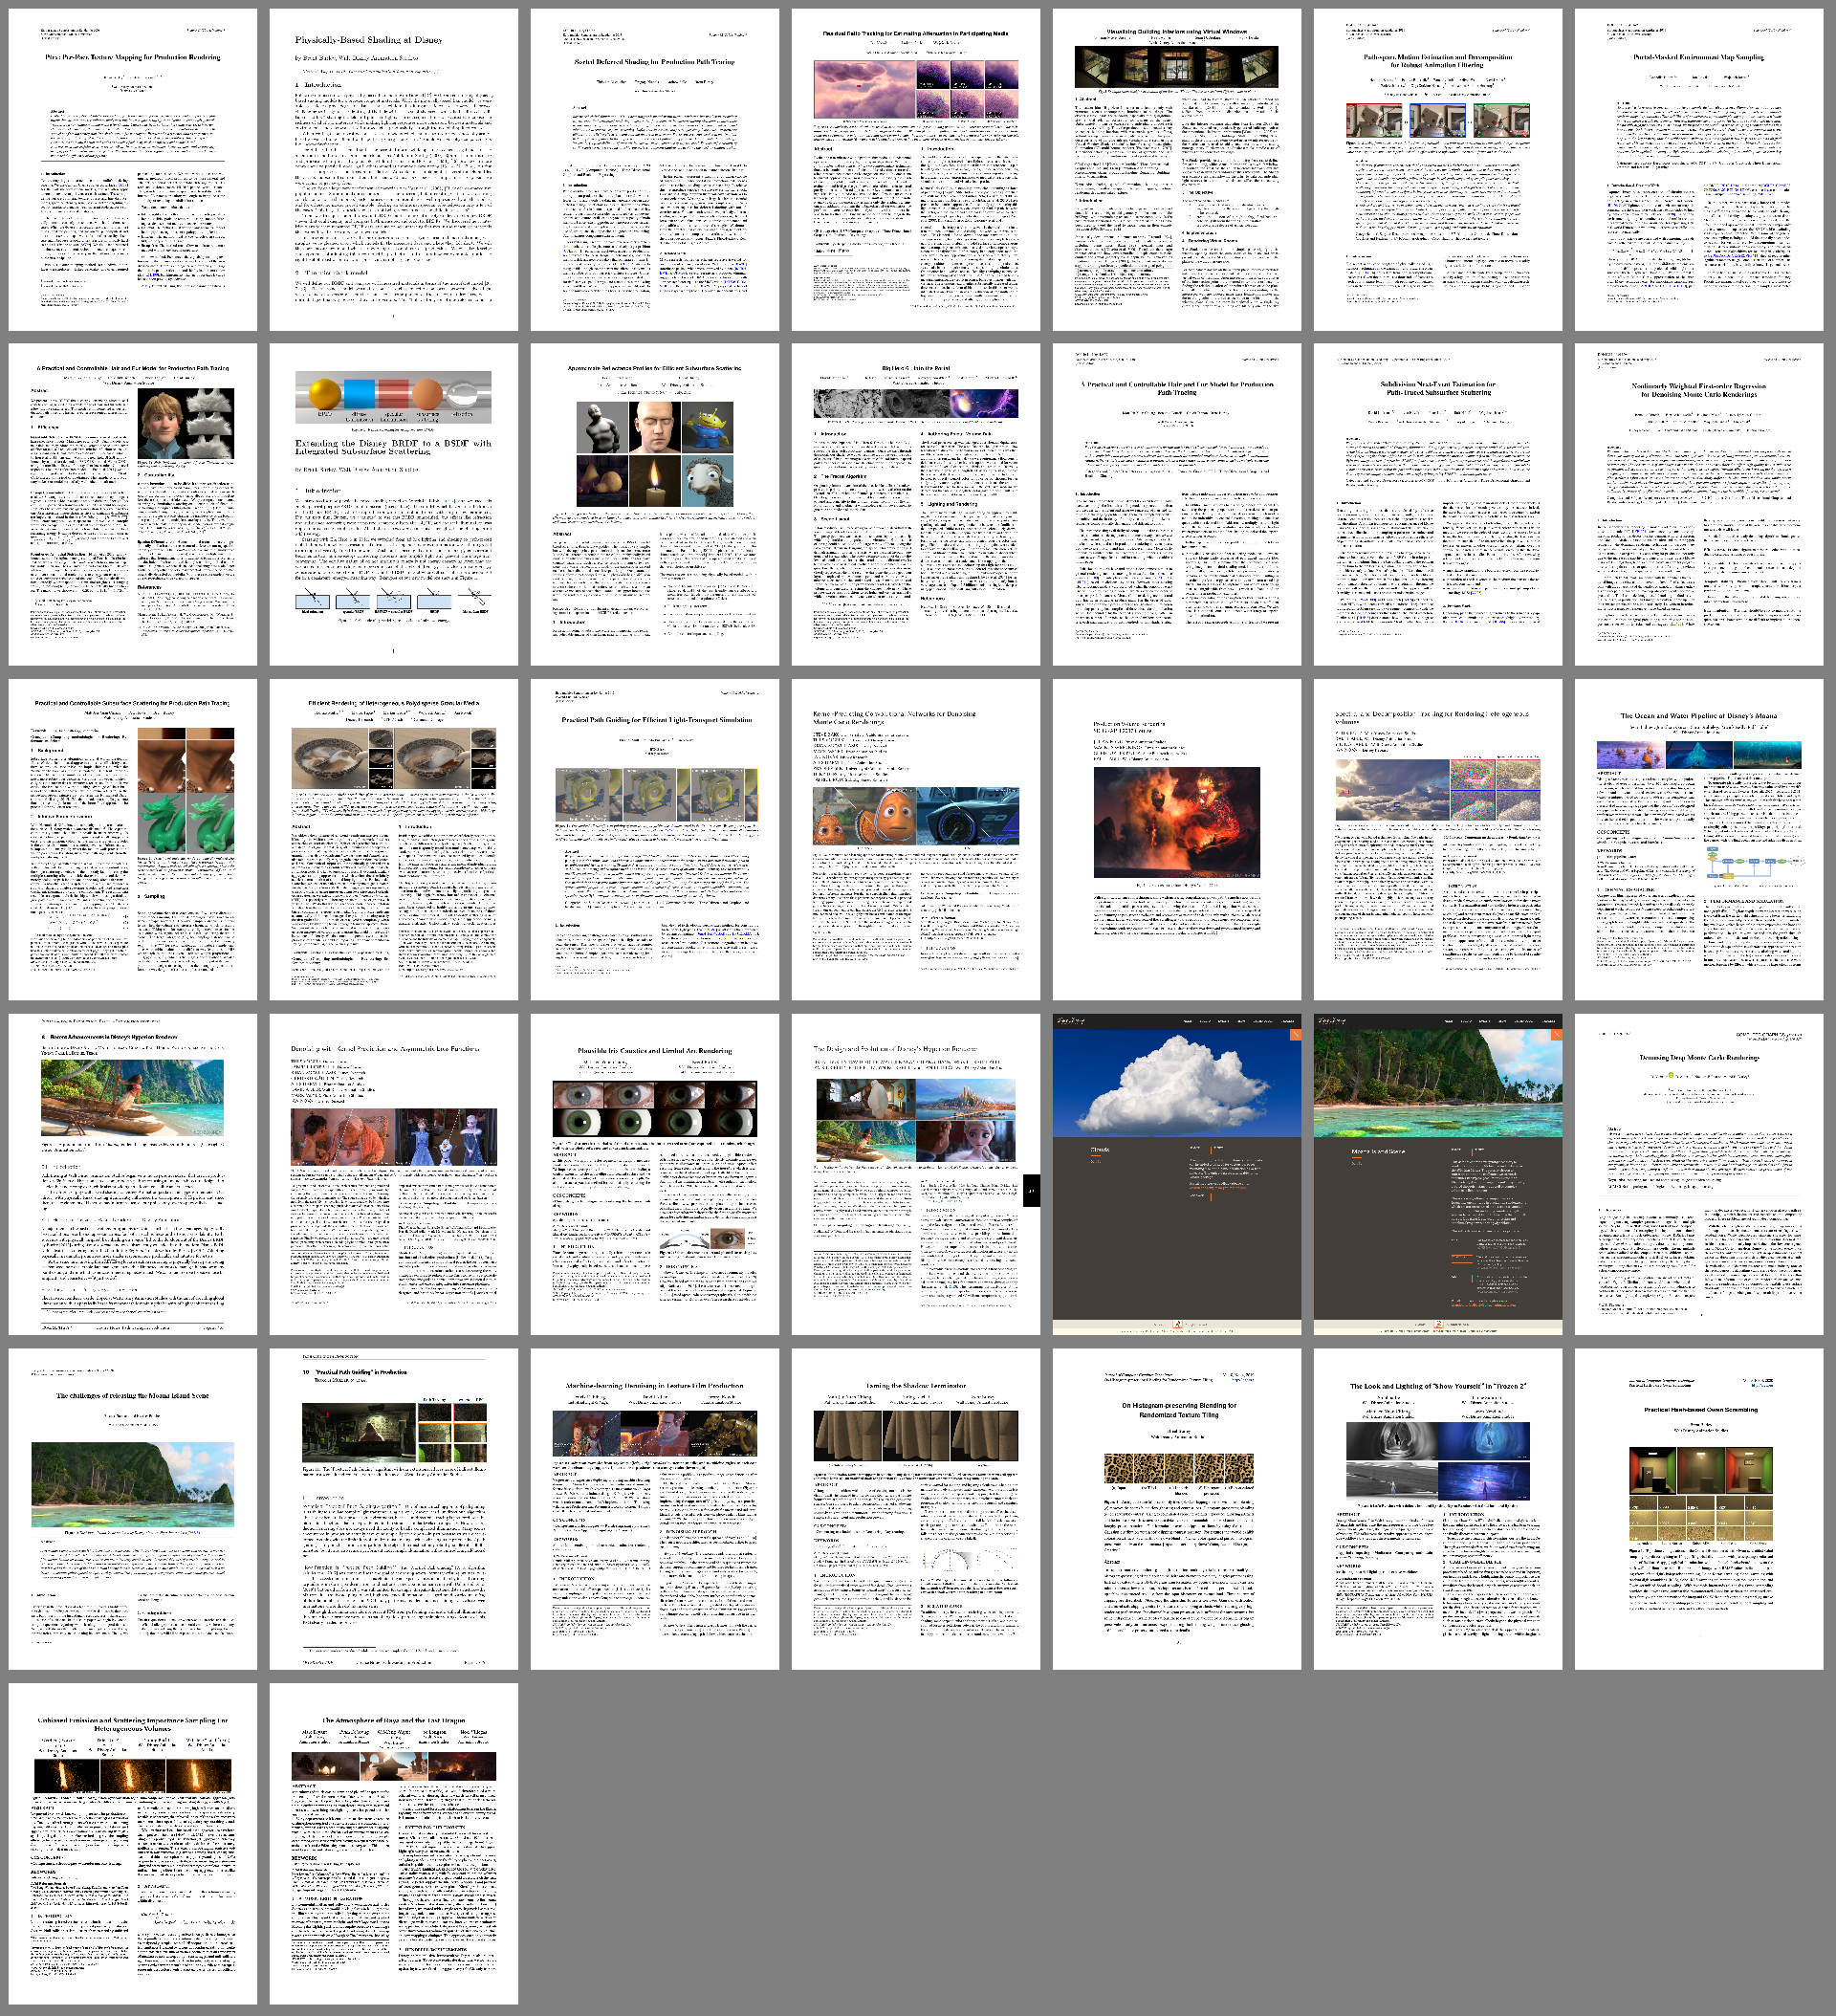 Figure 1: Previews of the first page of every Hyperion-related publication from Disney Animation, Disney Research Studios, and other research partners.